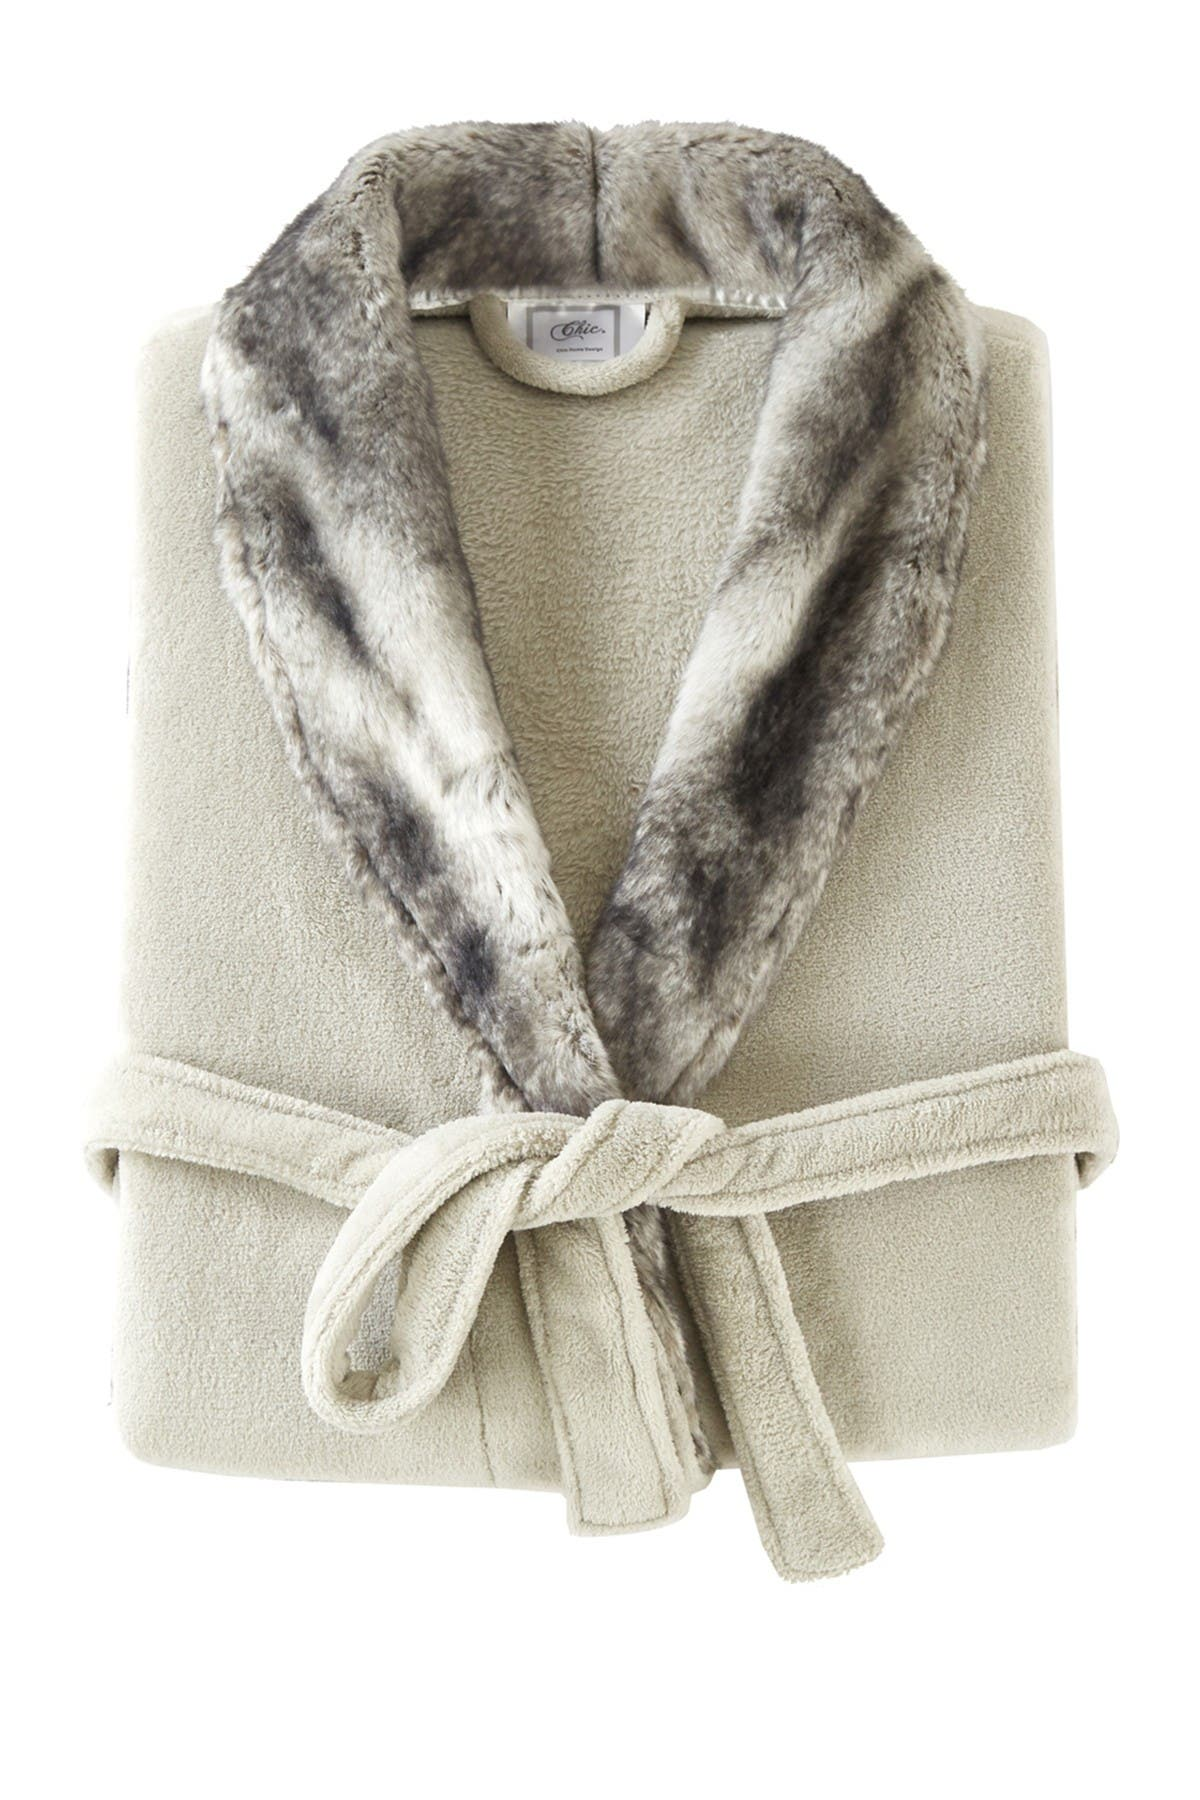 Chic Home Bedding Rolo Faux Fur Trim Robe - Grey at Nordstrom Rack